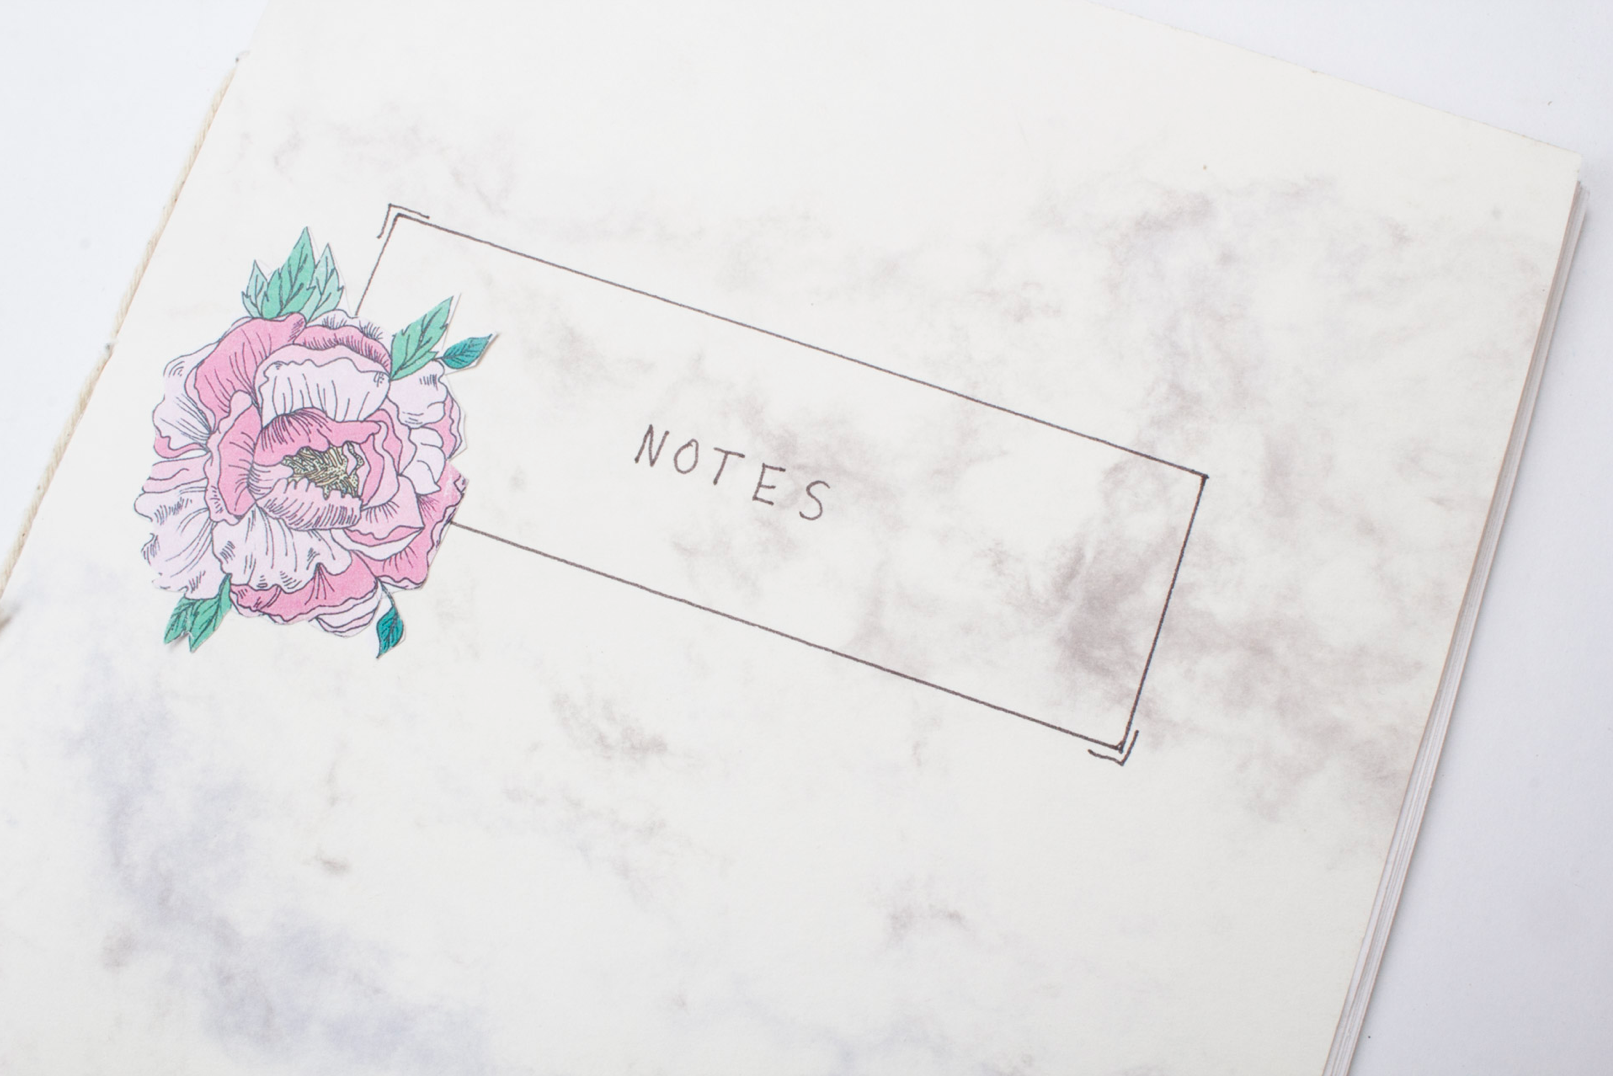 Bookbinding Personalized Journals (+ Free Peony Printables) - a bookbinding tutorial to make both a notebook as well as a sketchbook for finding inspiration!